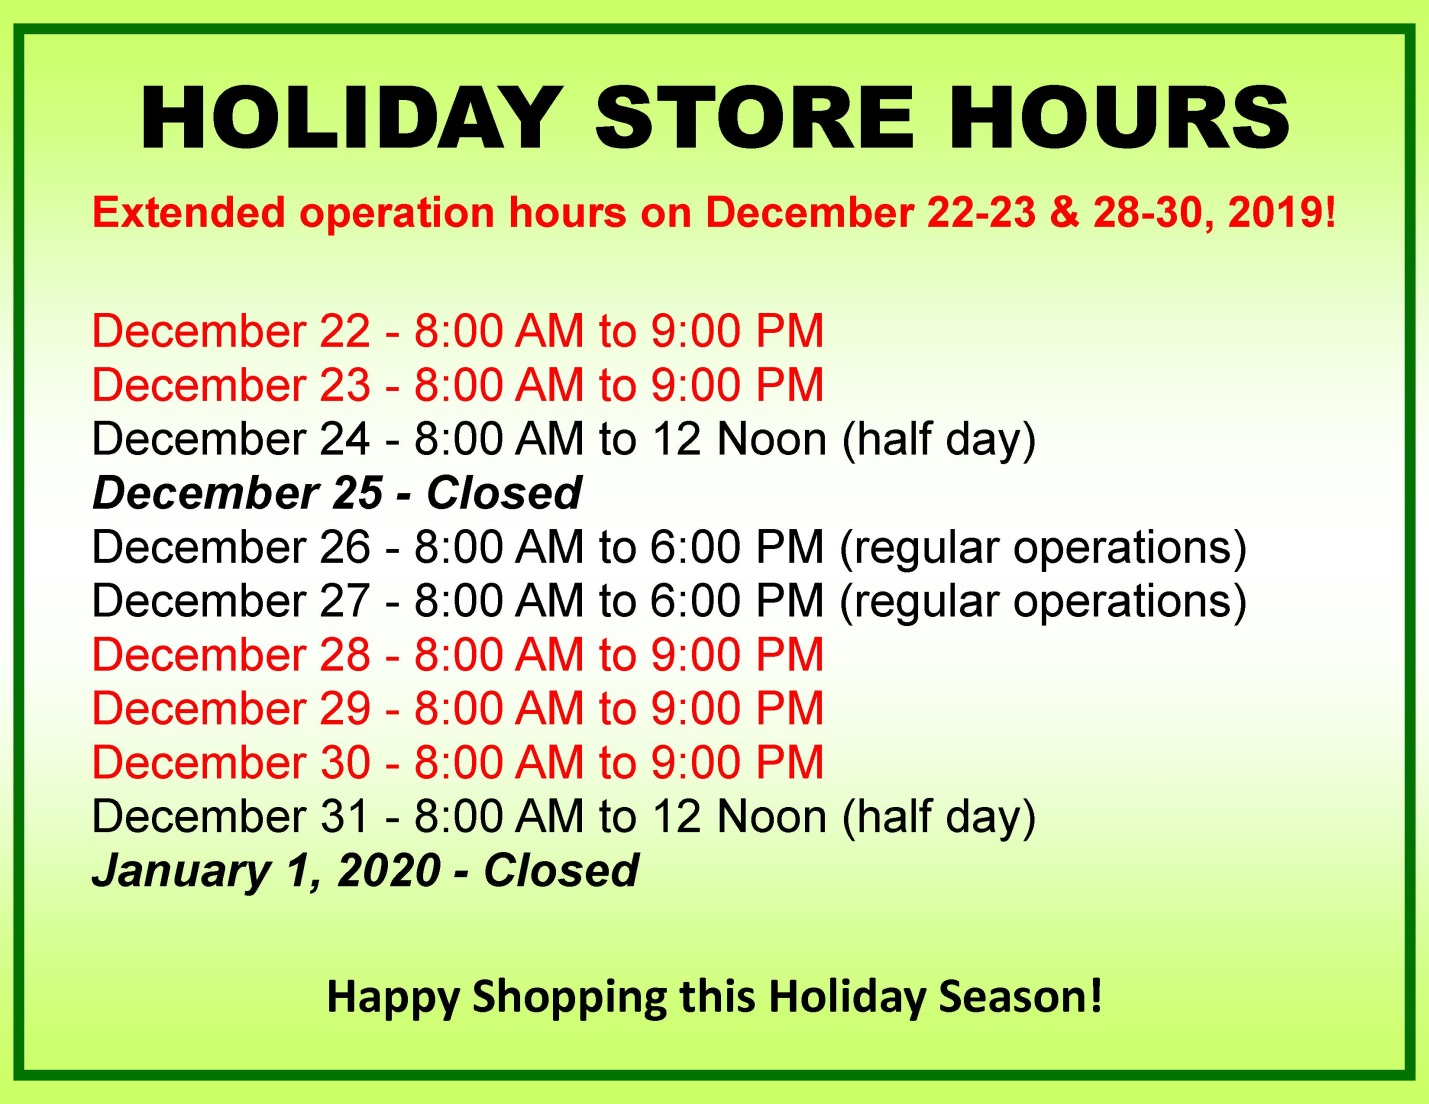 SHOPPING CENTER HOLIDAY STORE SCHEDULE